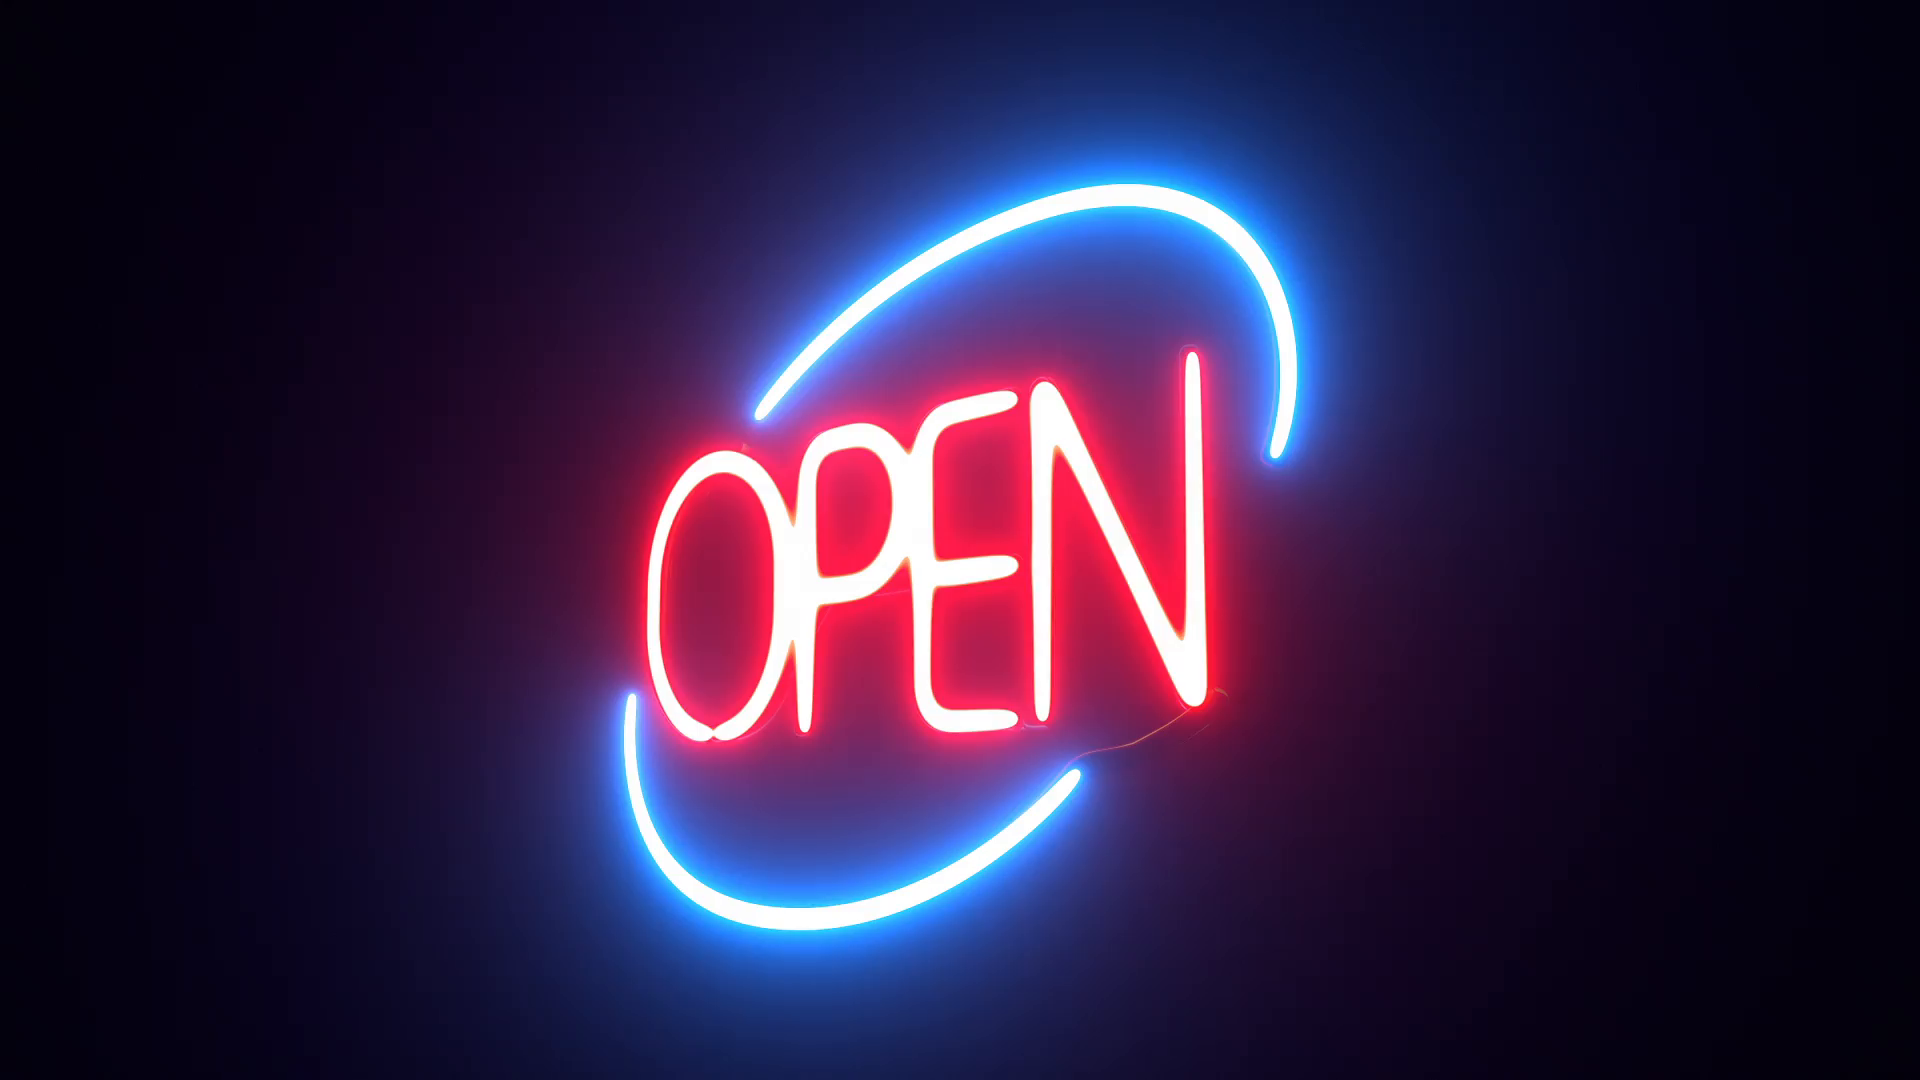 open neon sign wallpaper 66628